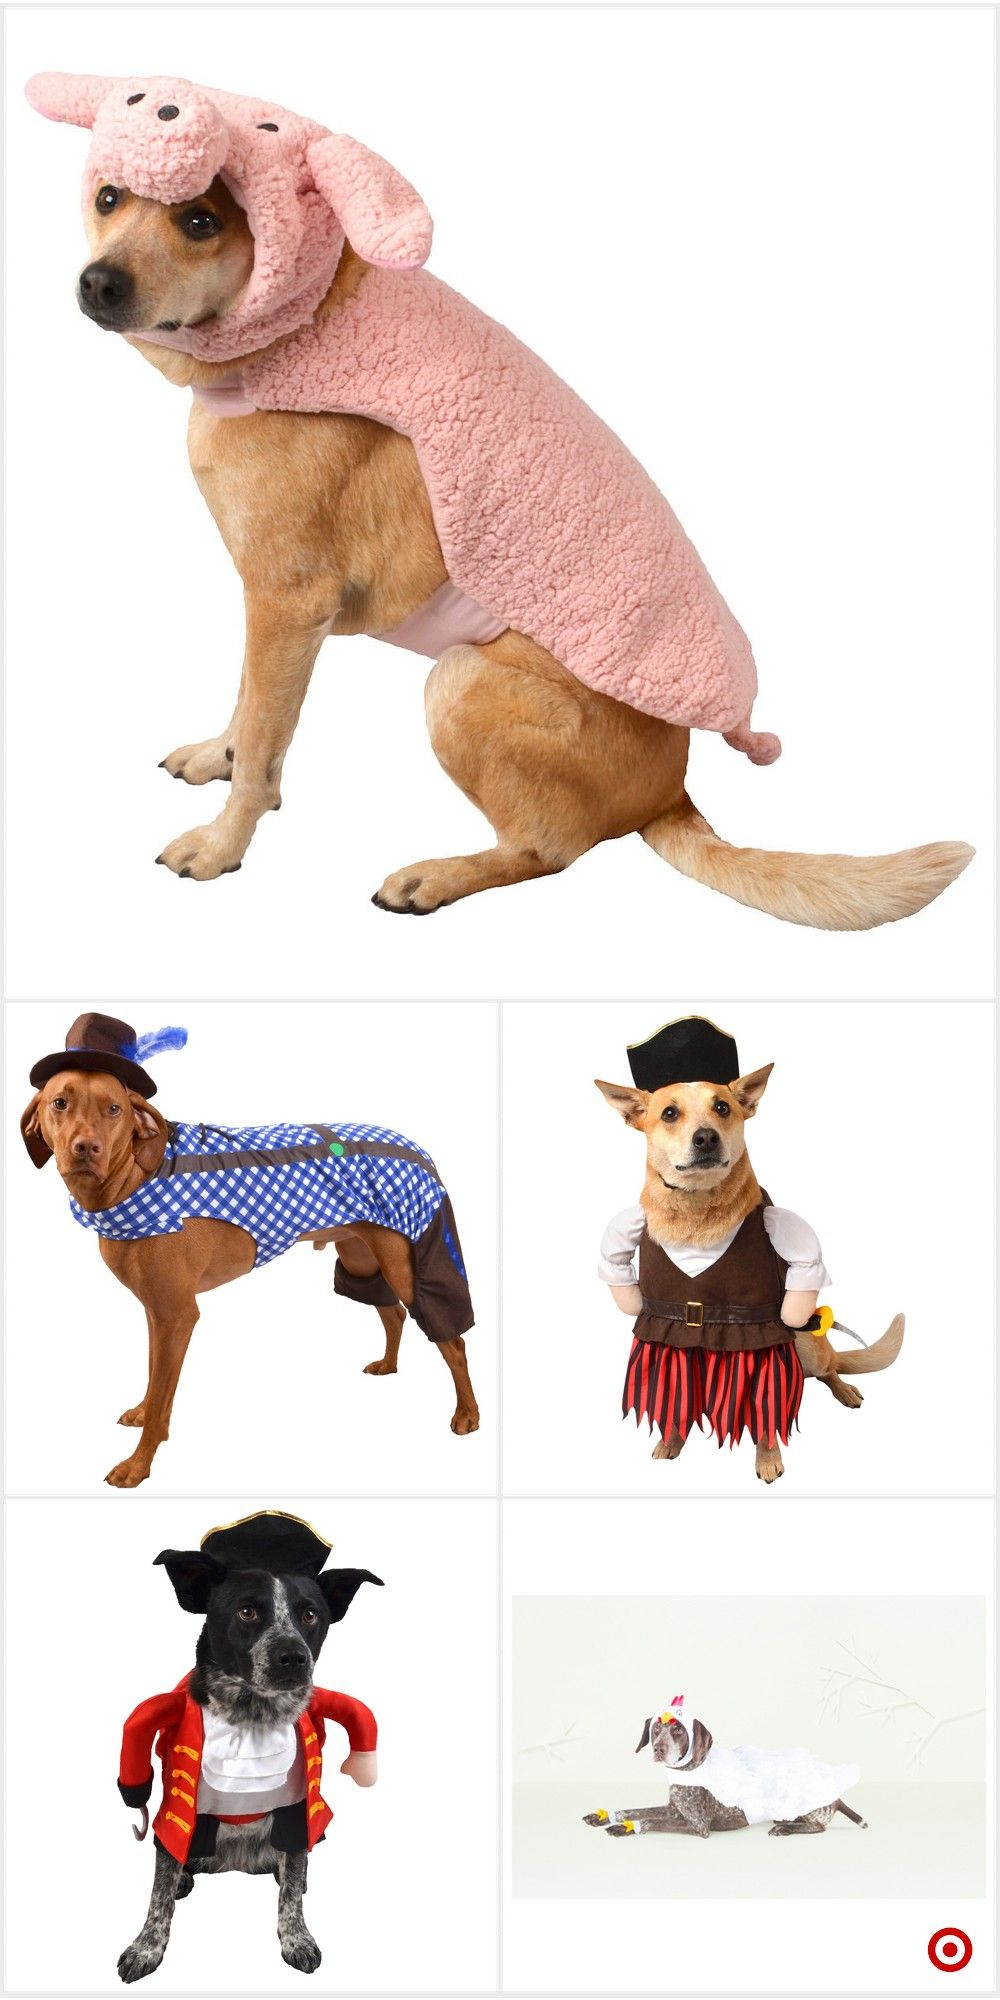 9b7ae99b1b35 Shop Target for pet costume headwear you will love at great low prices.  Free shipping on orders of  35+ or free same-day pick-up in store.